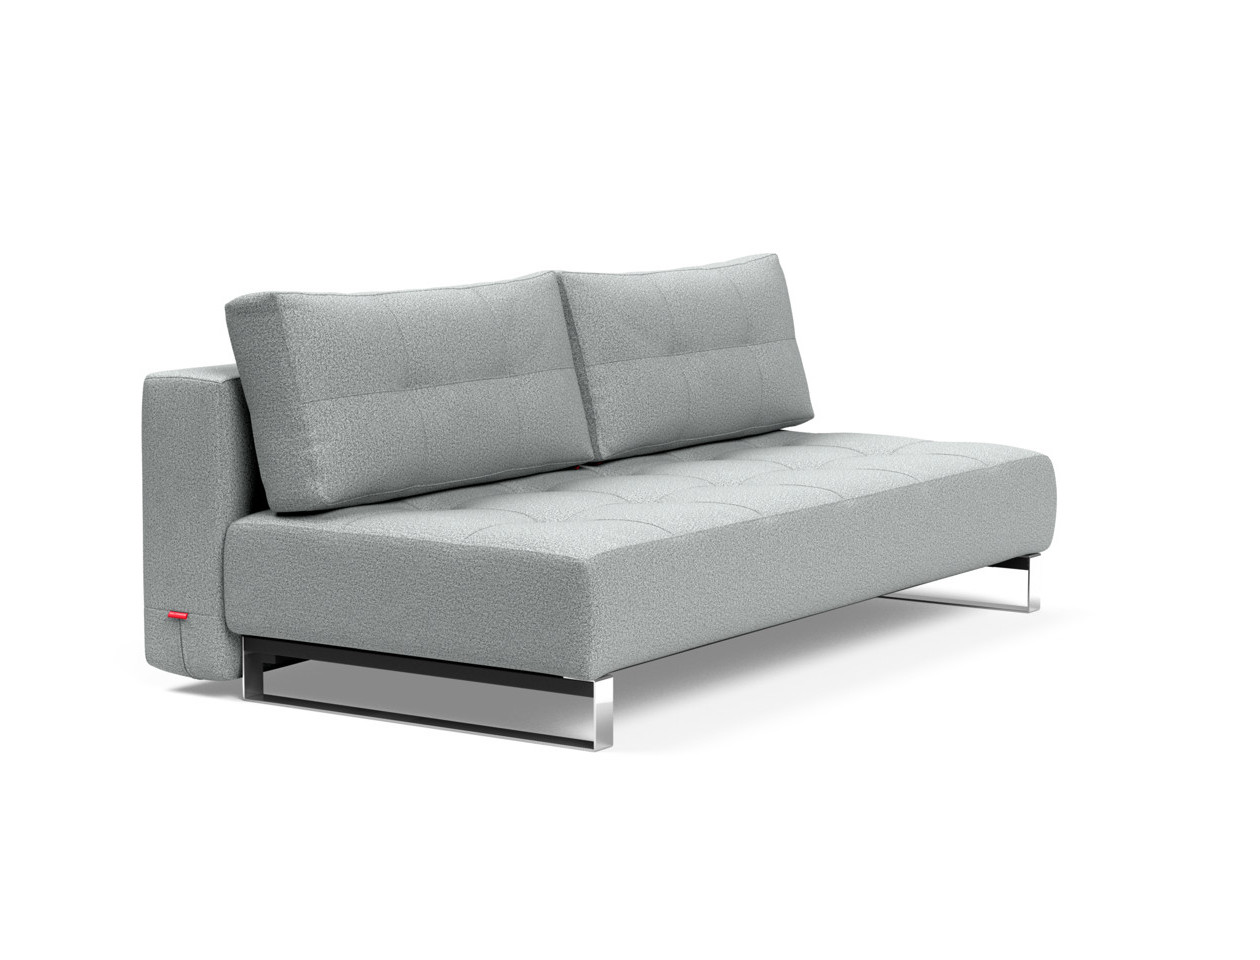 Supremax Deluxe Excess Sofa Bed Queen Size Melange Light Gray By Innovation